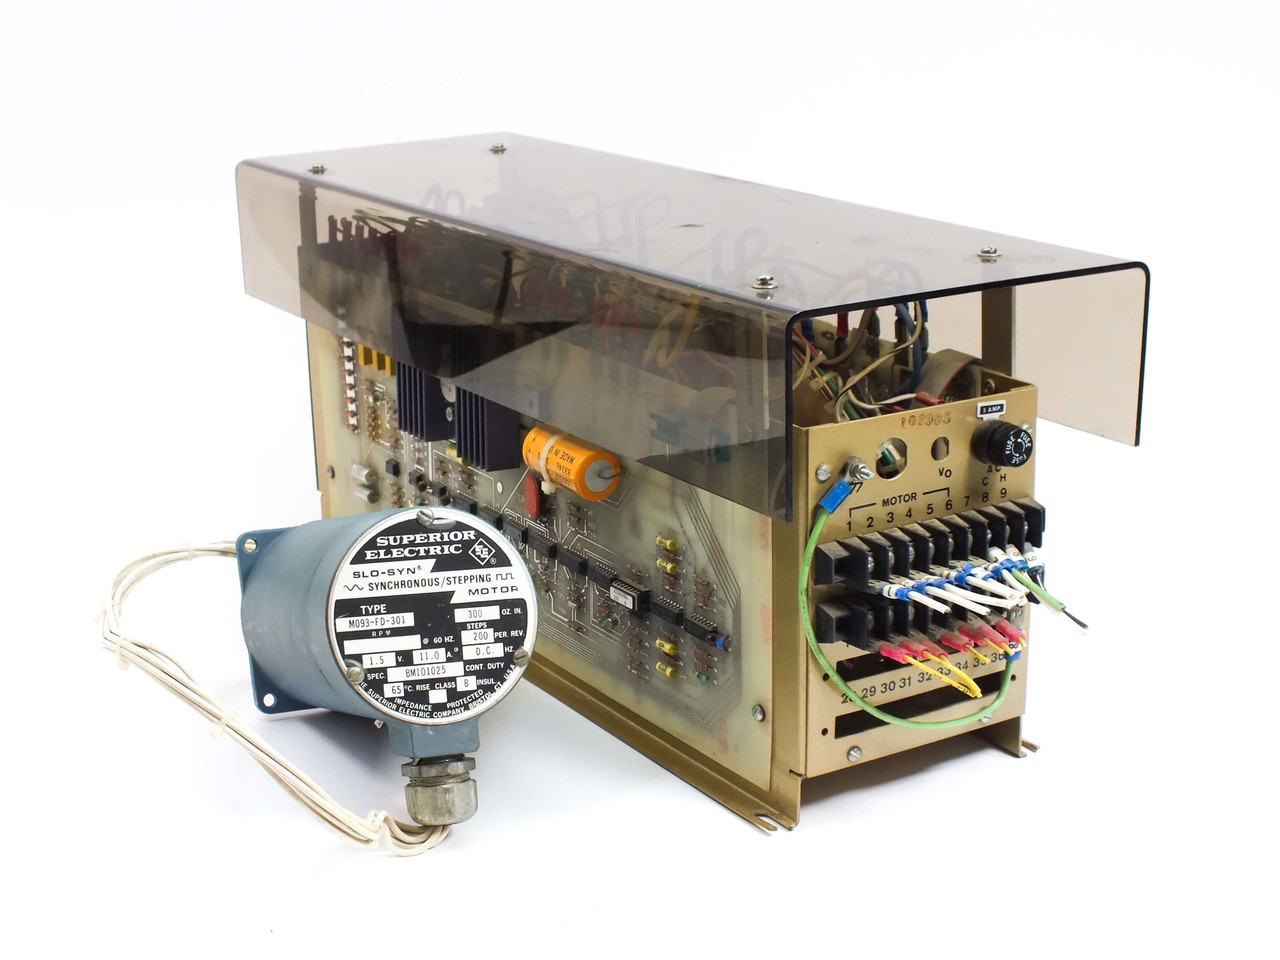 Superior Electric Tbm105 9322 Translator With Synchronous